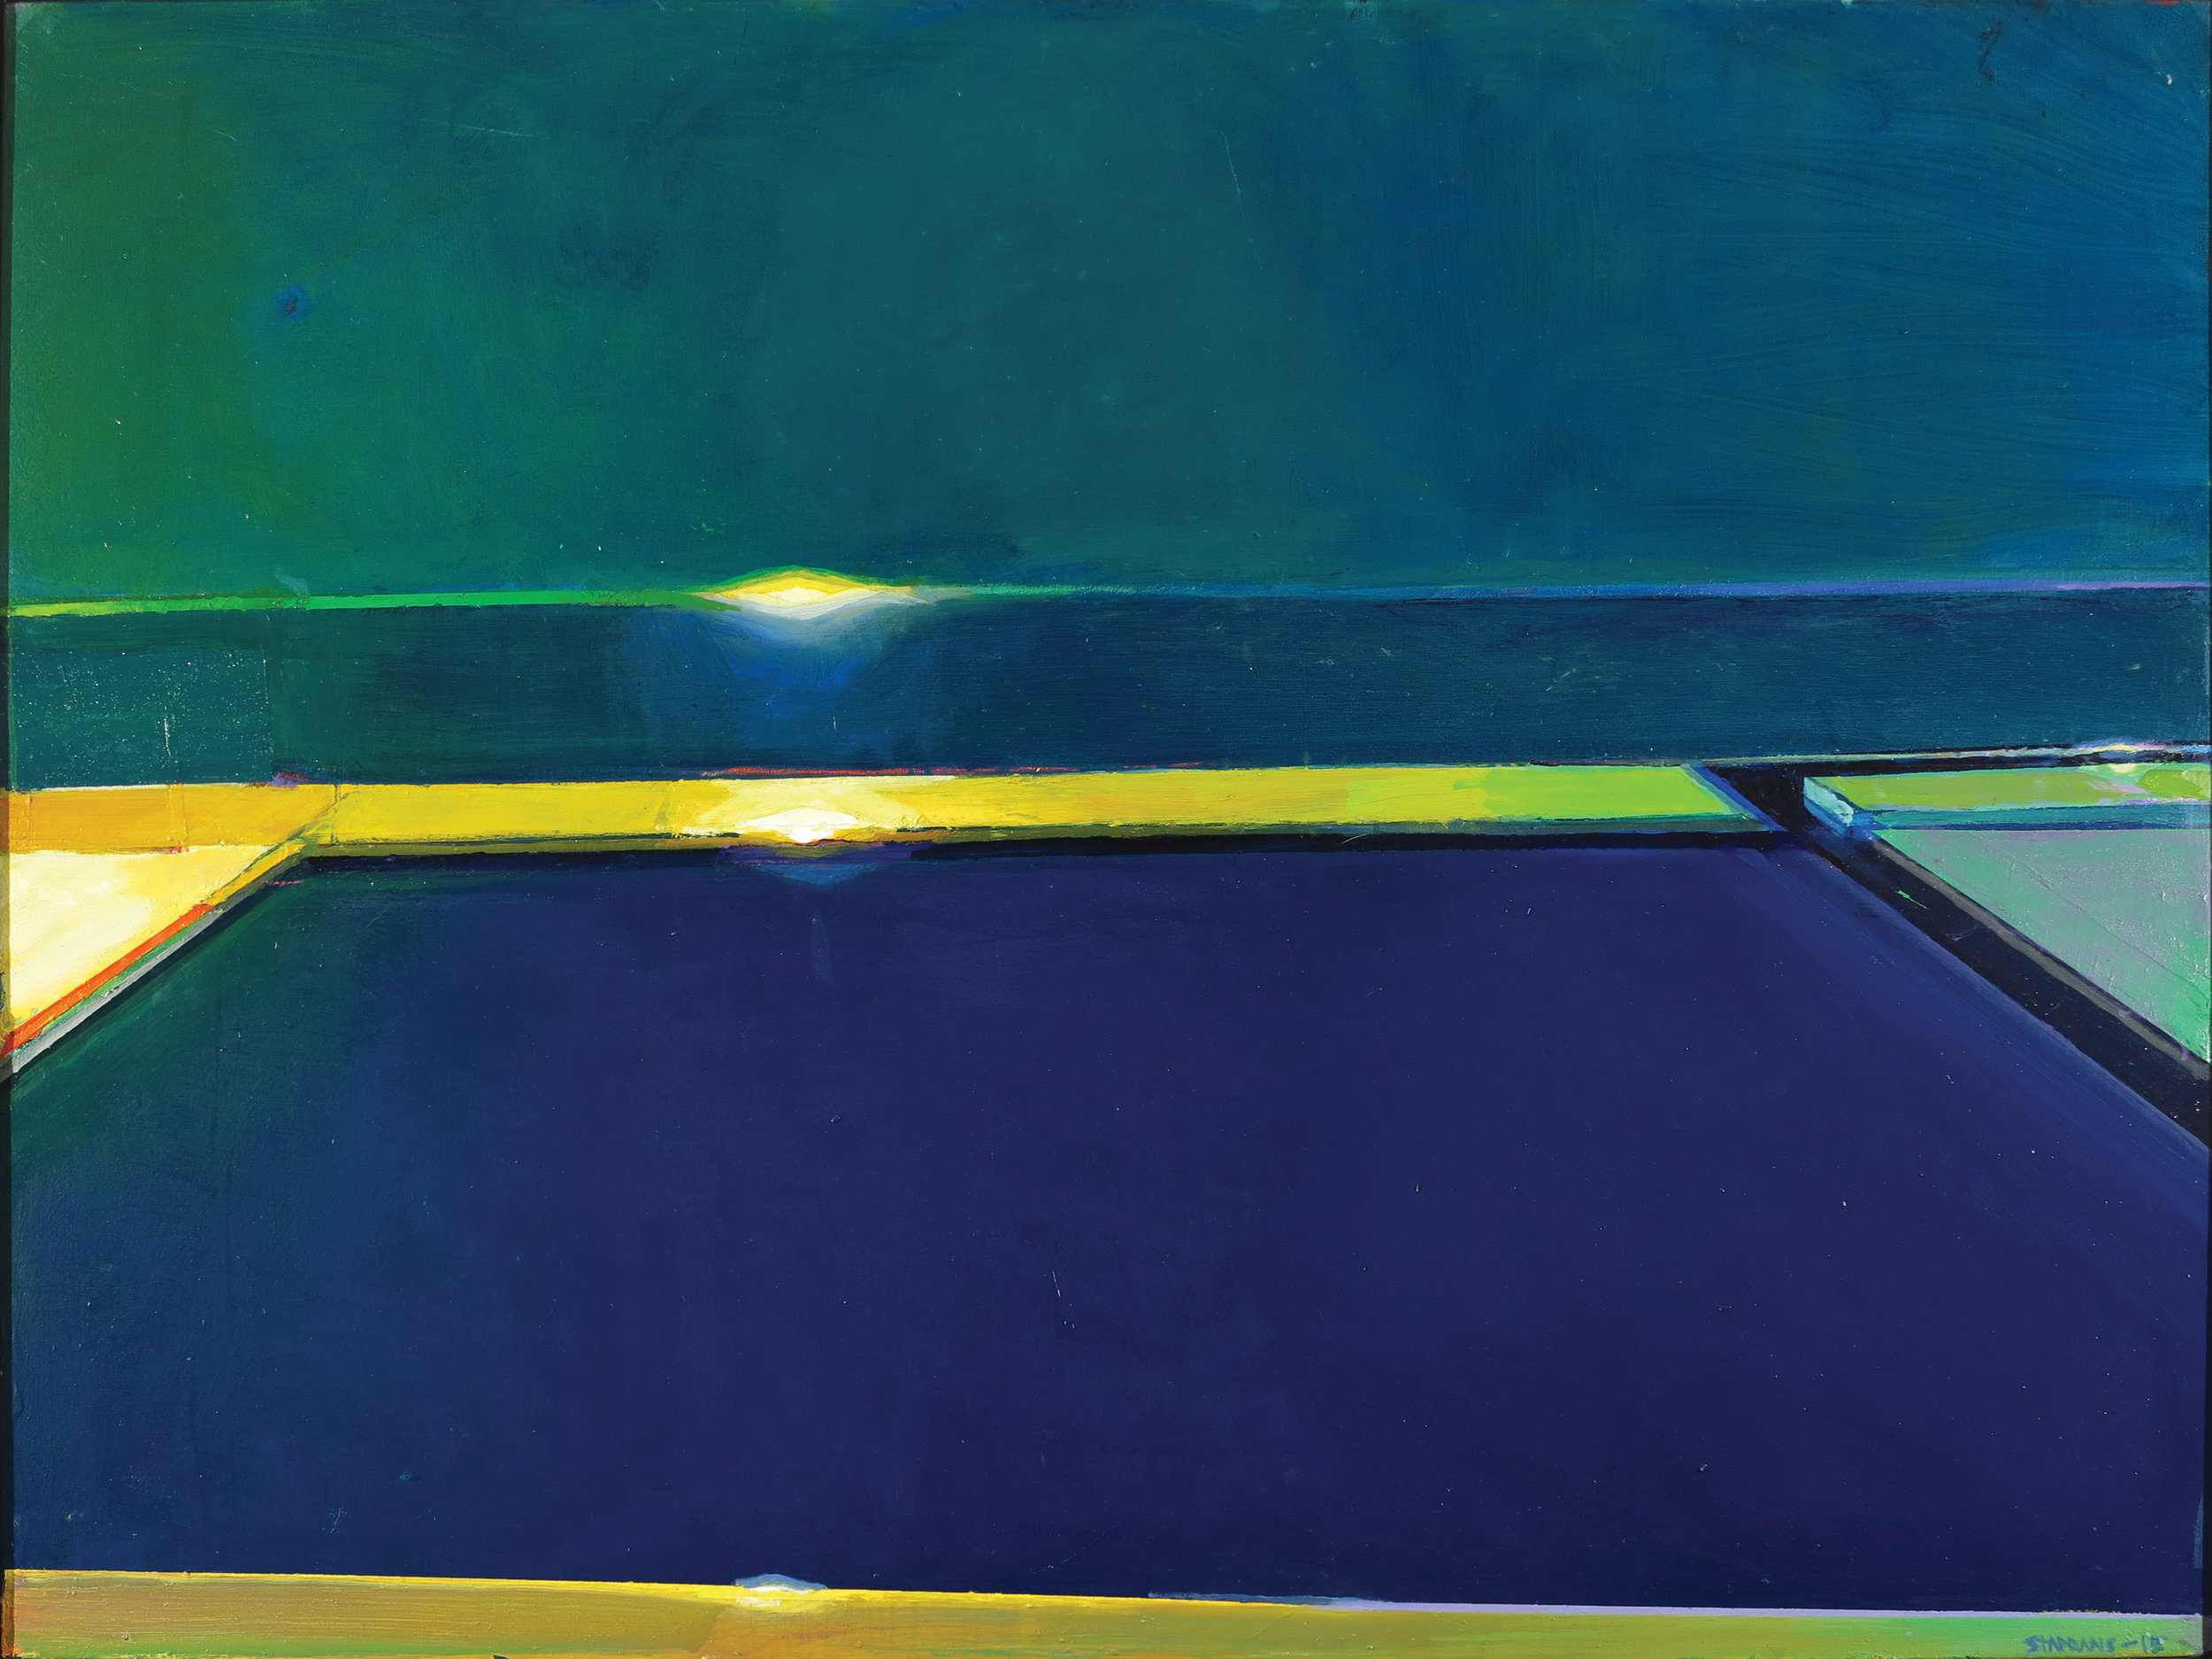 Raimonds Staprans – Empty Evening Docks (detail), 36 x 48 in, 2015, oil on canvas